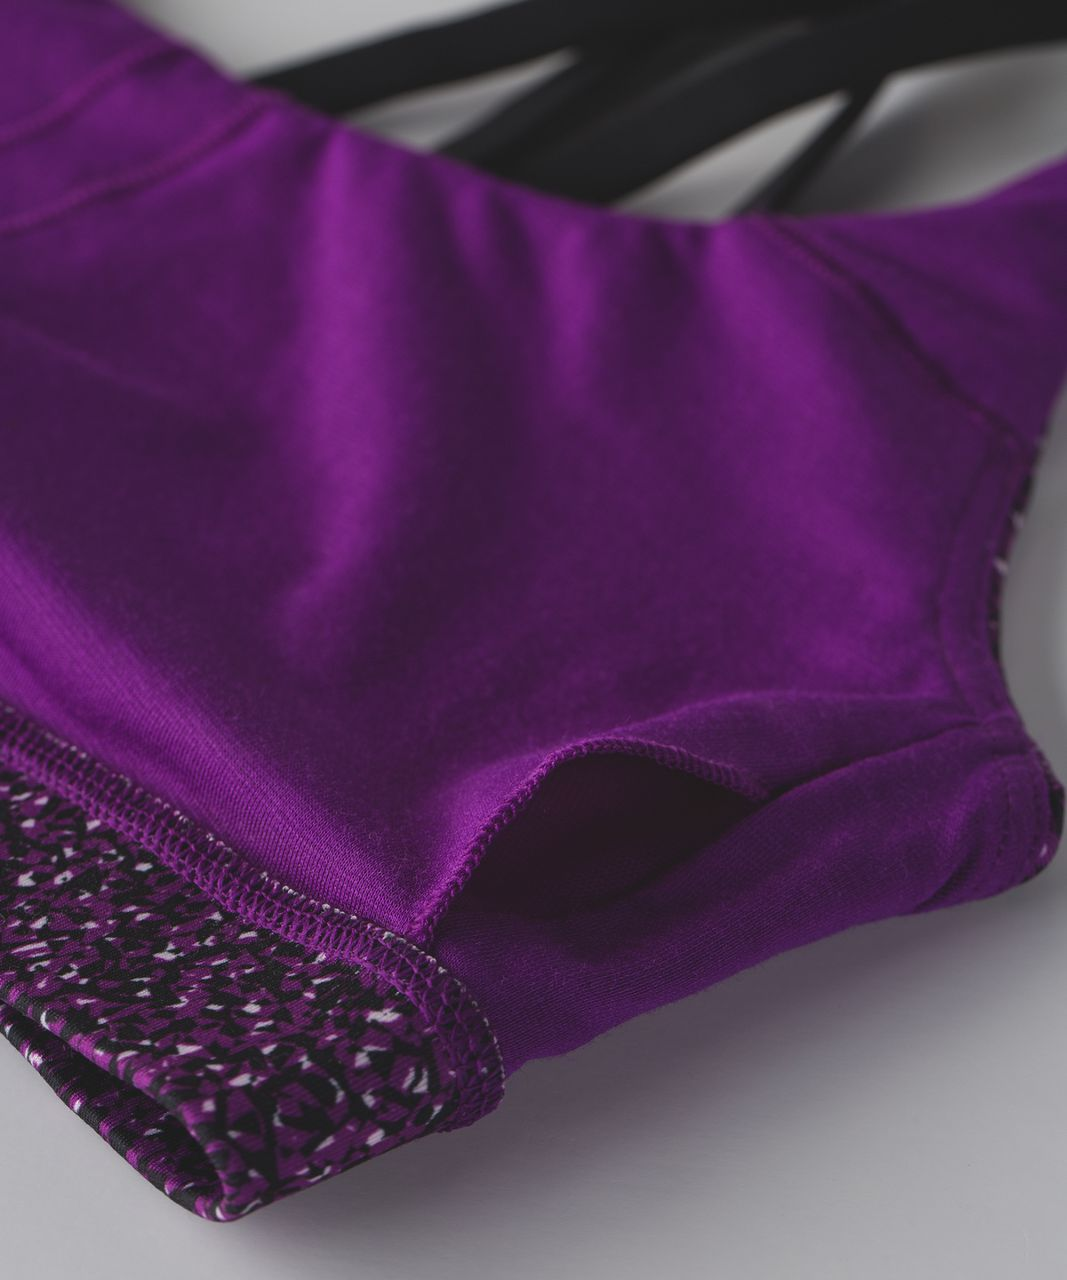 Lululemon Energy Bra - Flashback Static Powdered Rose Tender Violet / Black